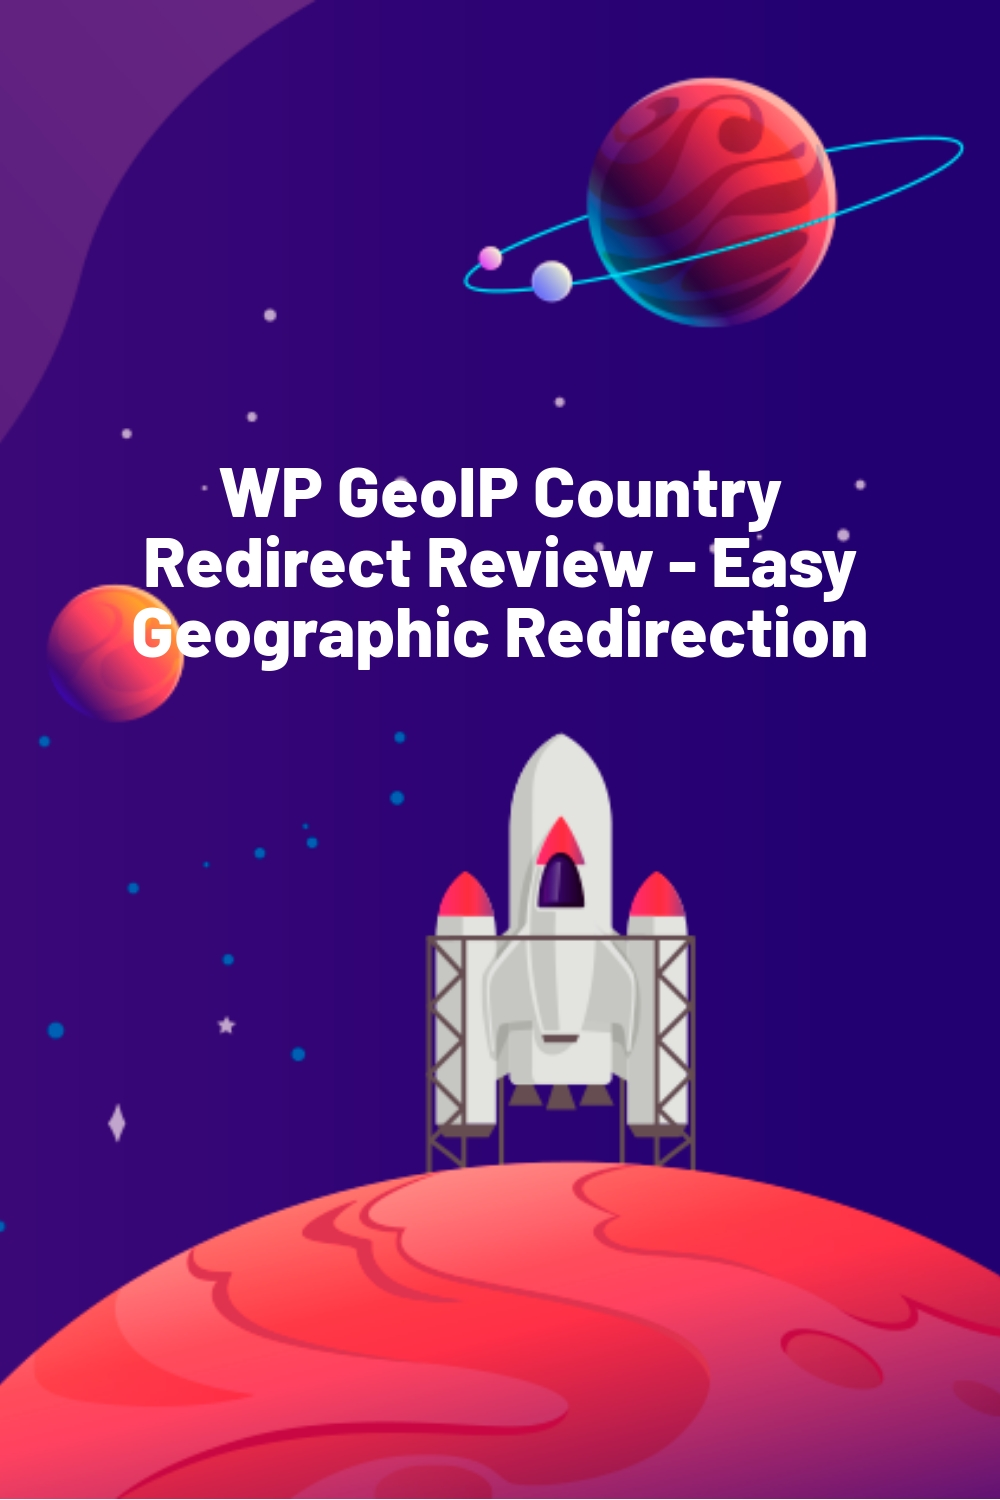 WP GeoIP Country Redirect Review – Easy Geographic Redirection